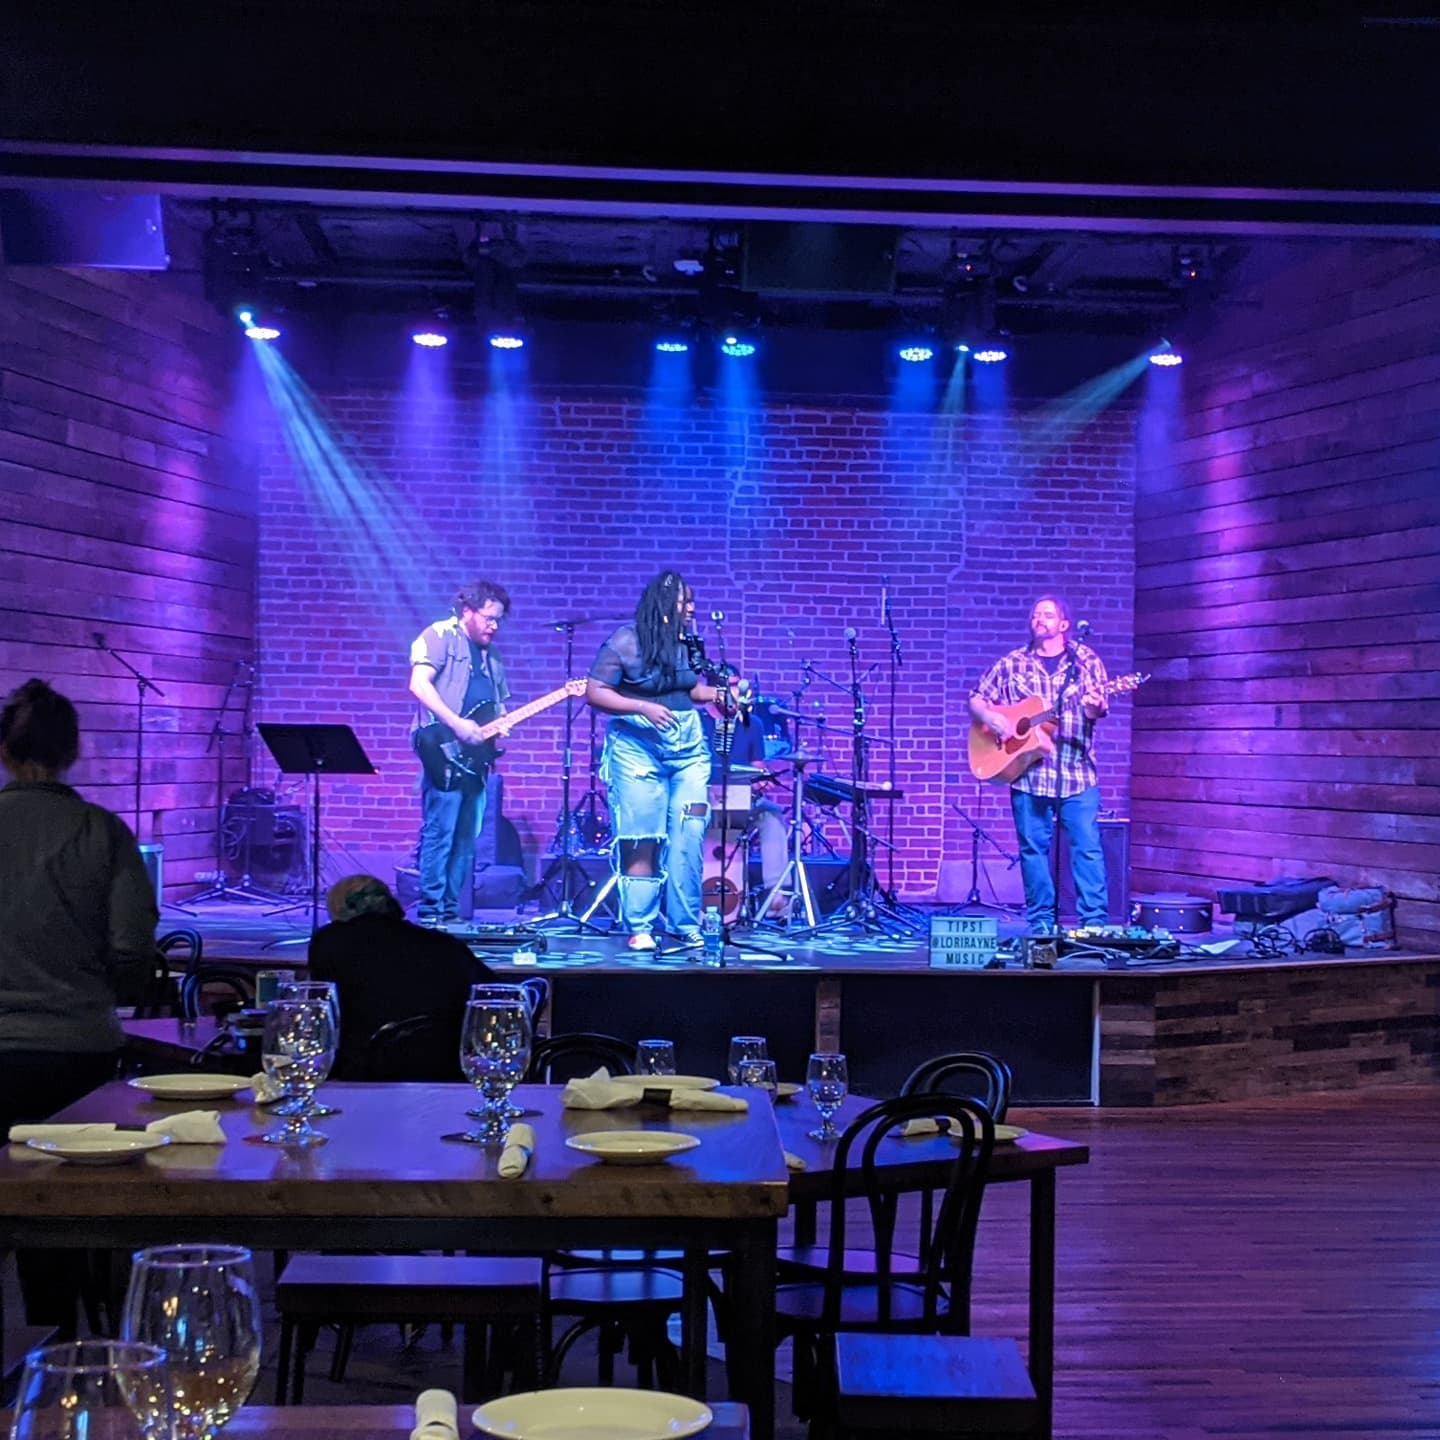 It's a weeknight so not busy, but they still do live music right here. Not overpoweringly loud with a GREAT singer @loriraynemusic and I'm digging this place. At #fennecbham